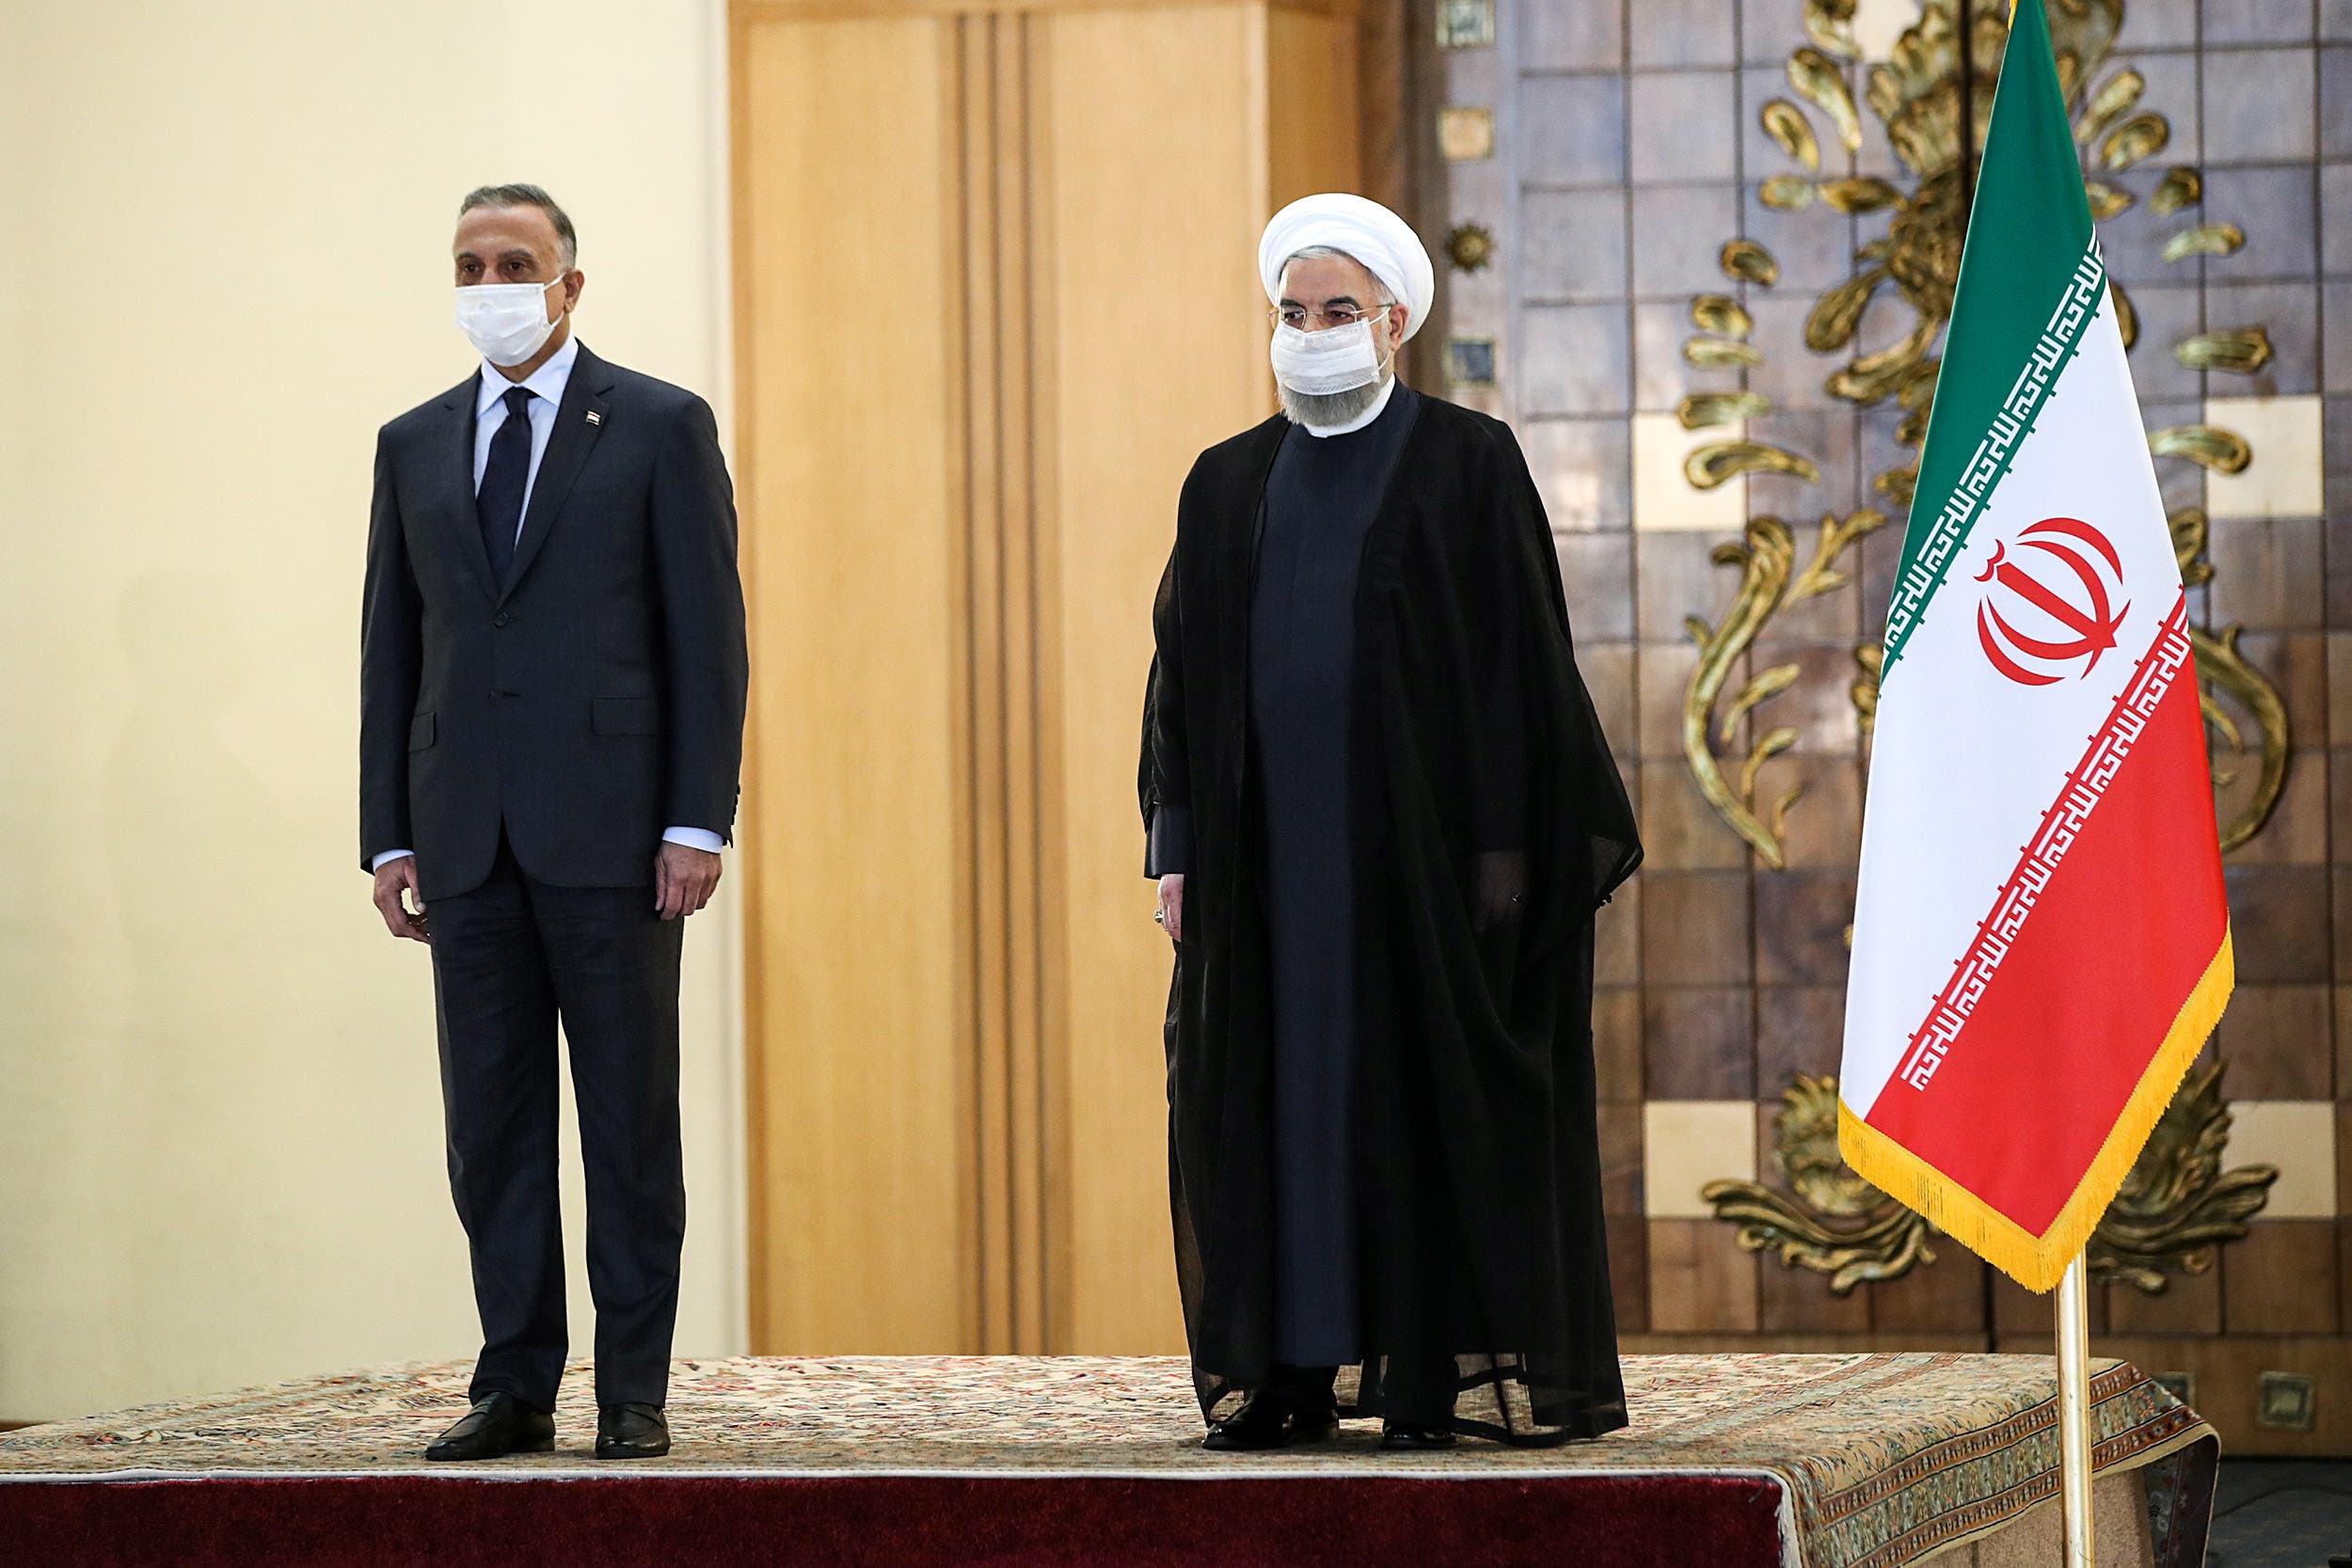 A handout picture provided by the Iranian presidency on July 21, 2020, shows the mask-clad President Hassan Rouhani (R) receiving Iraq's Prime Minister Mustafa al-Kadhimi (L) in the capital Tehran.